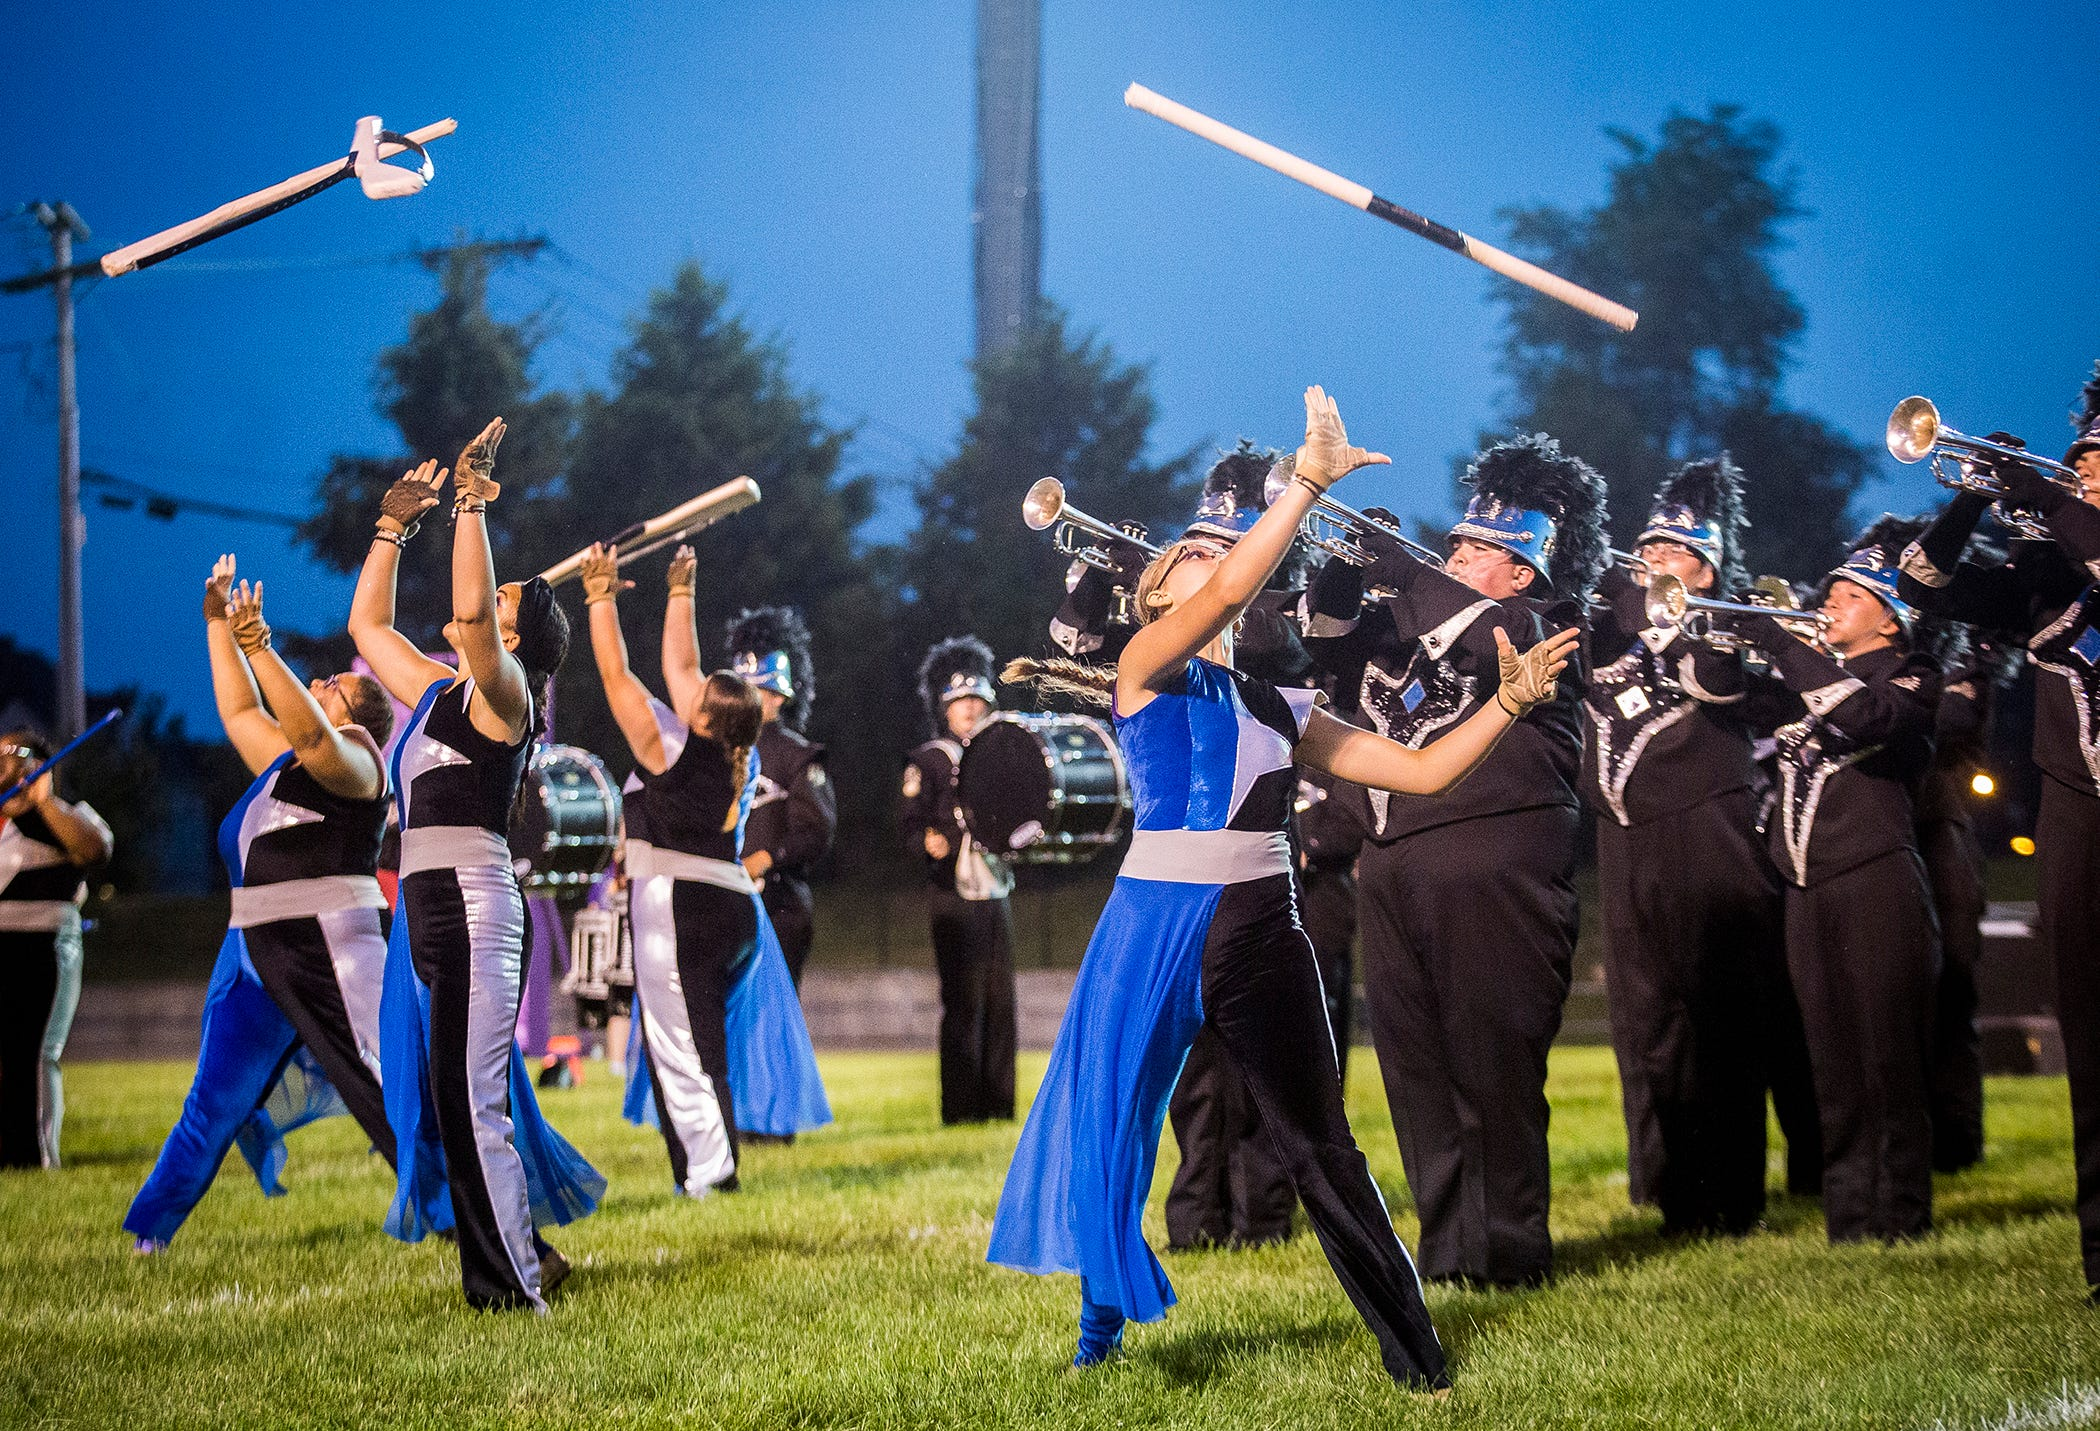 Indiana State Fair Band Day what you need to know